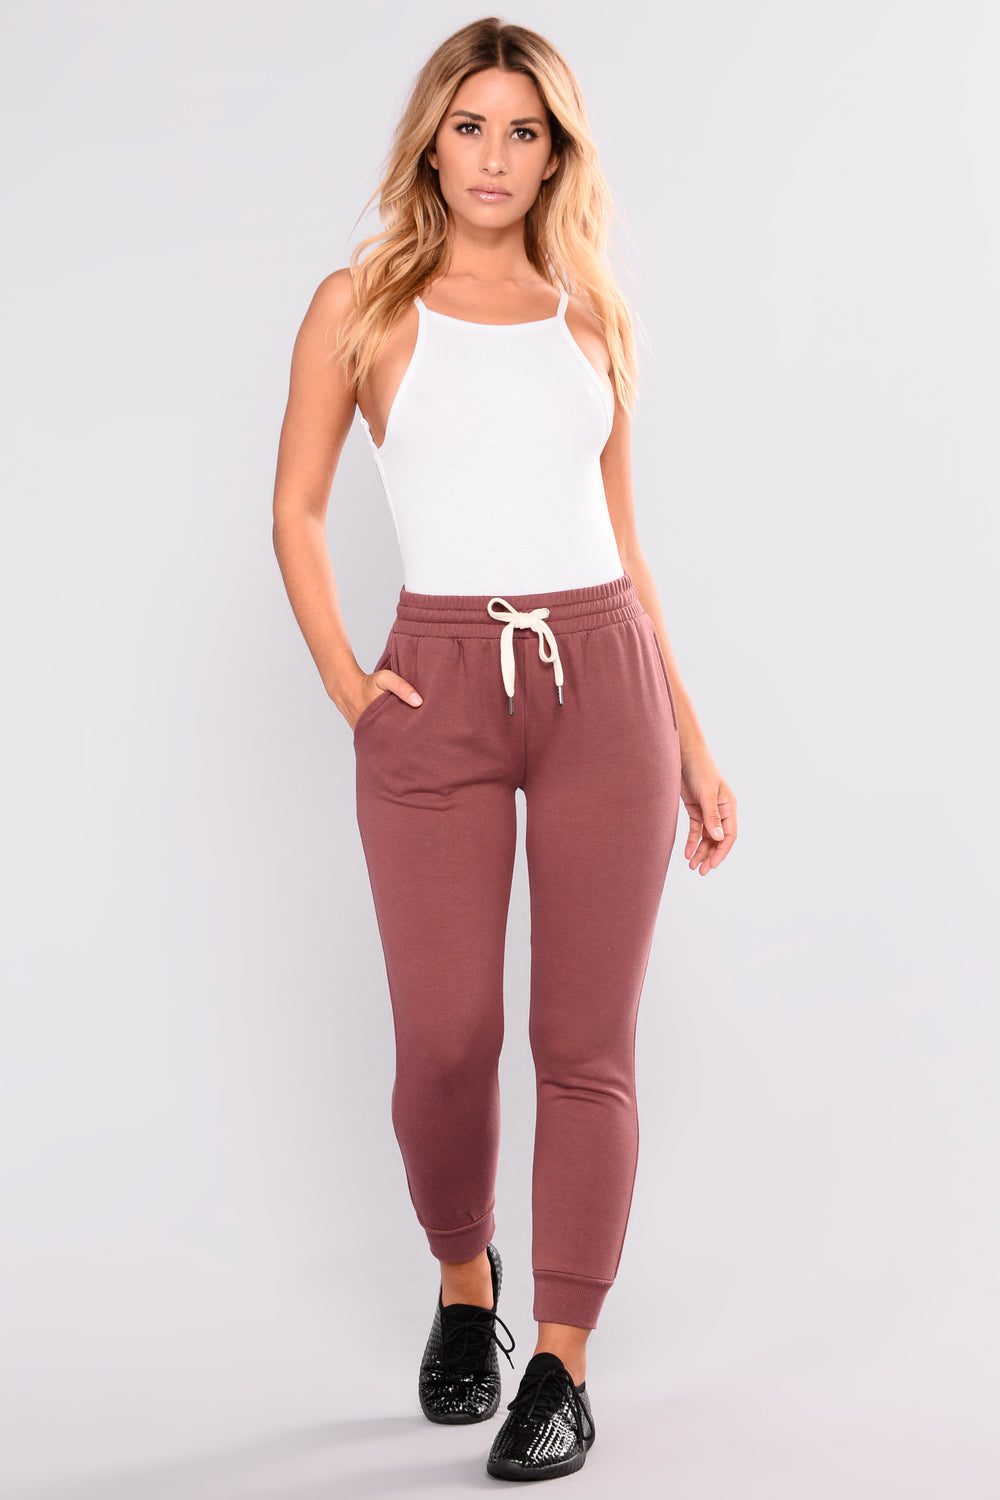 Easy As Can Be Basic Joggers - Dark Mauve